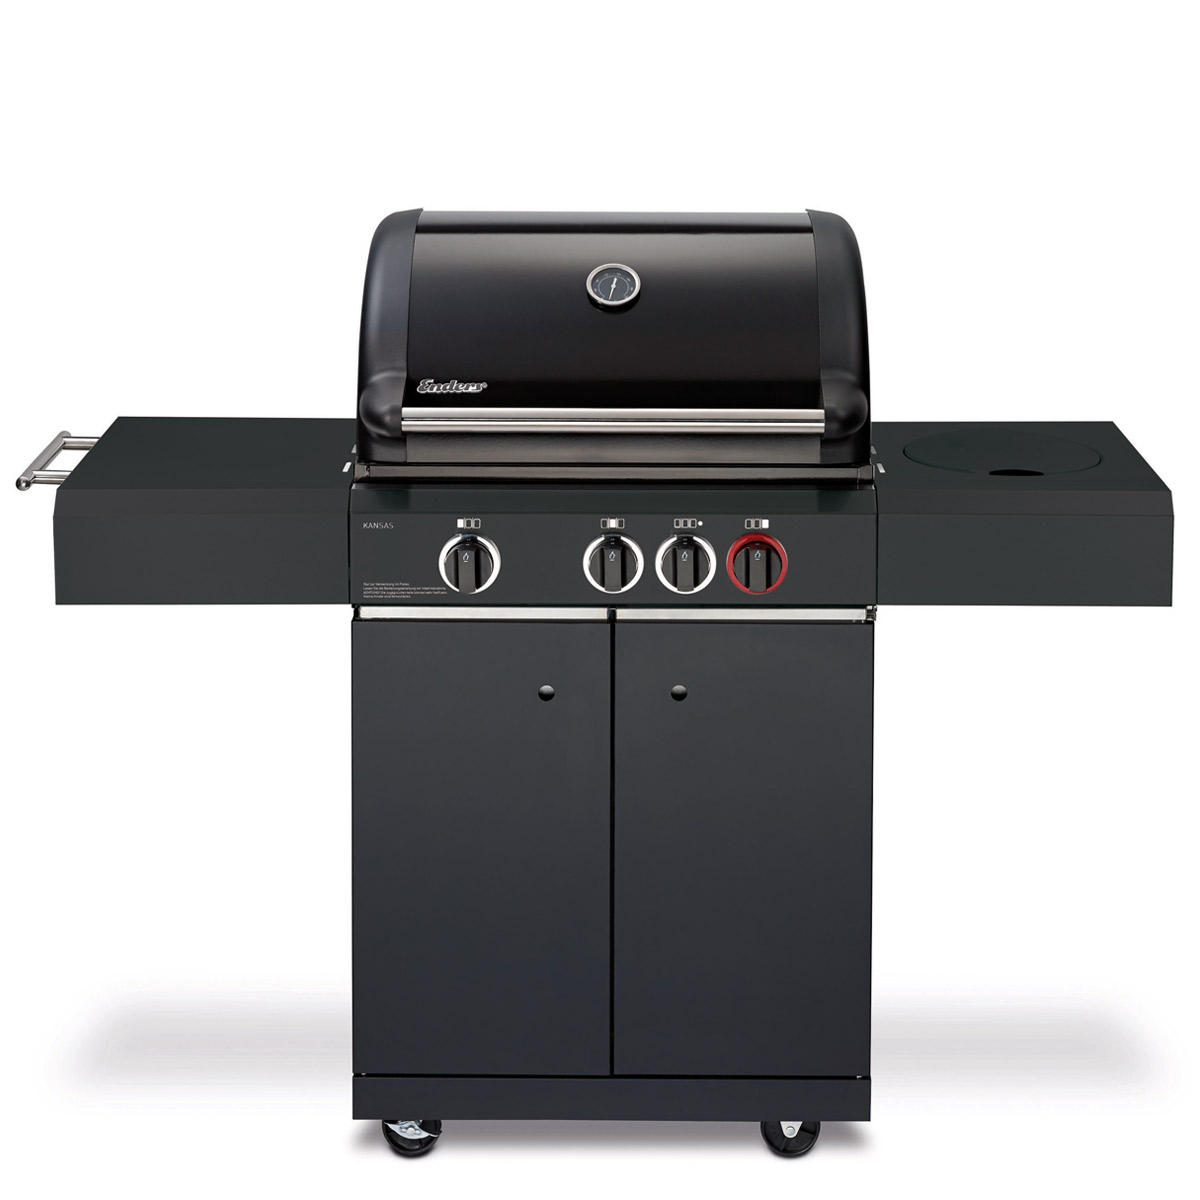 enders gasgrill kansas black 3k turbo sc grill profi. Black Bedroom Furniture Sets. Home Design Ideas